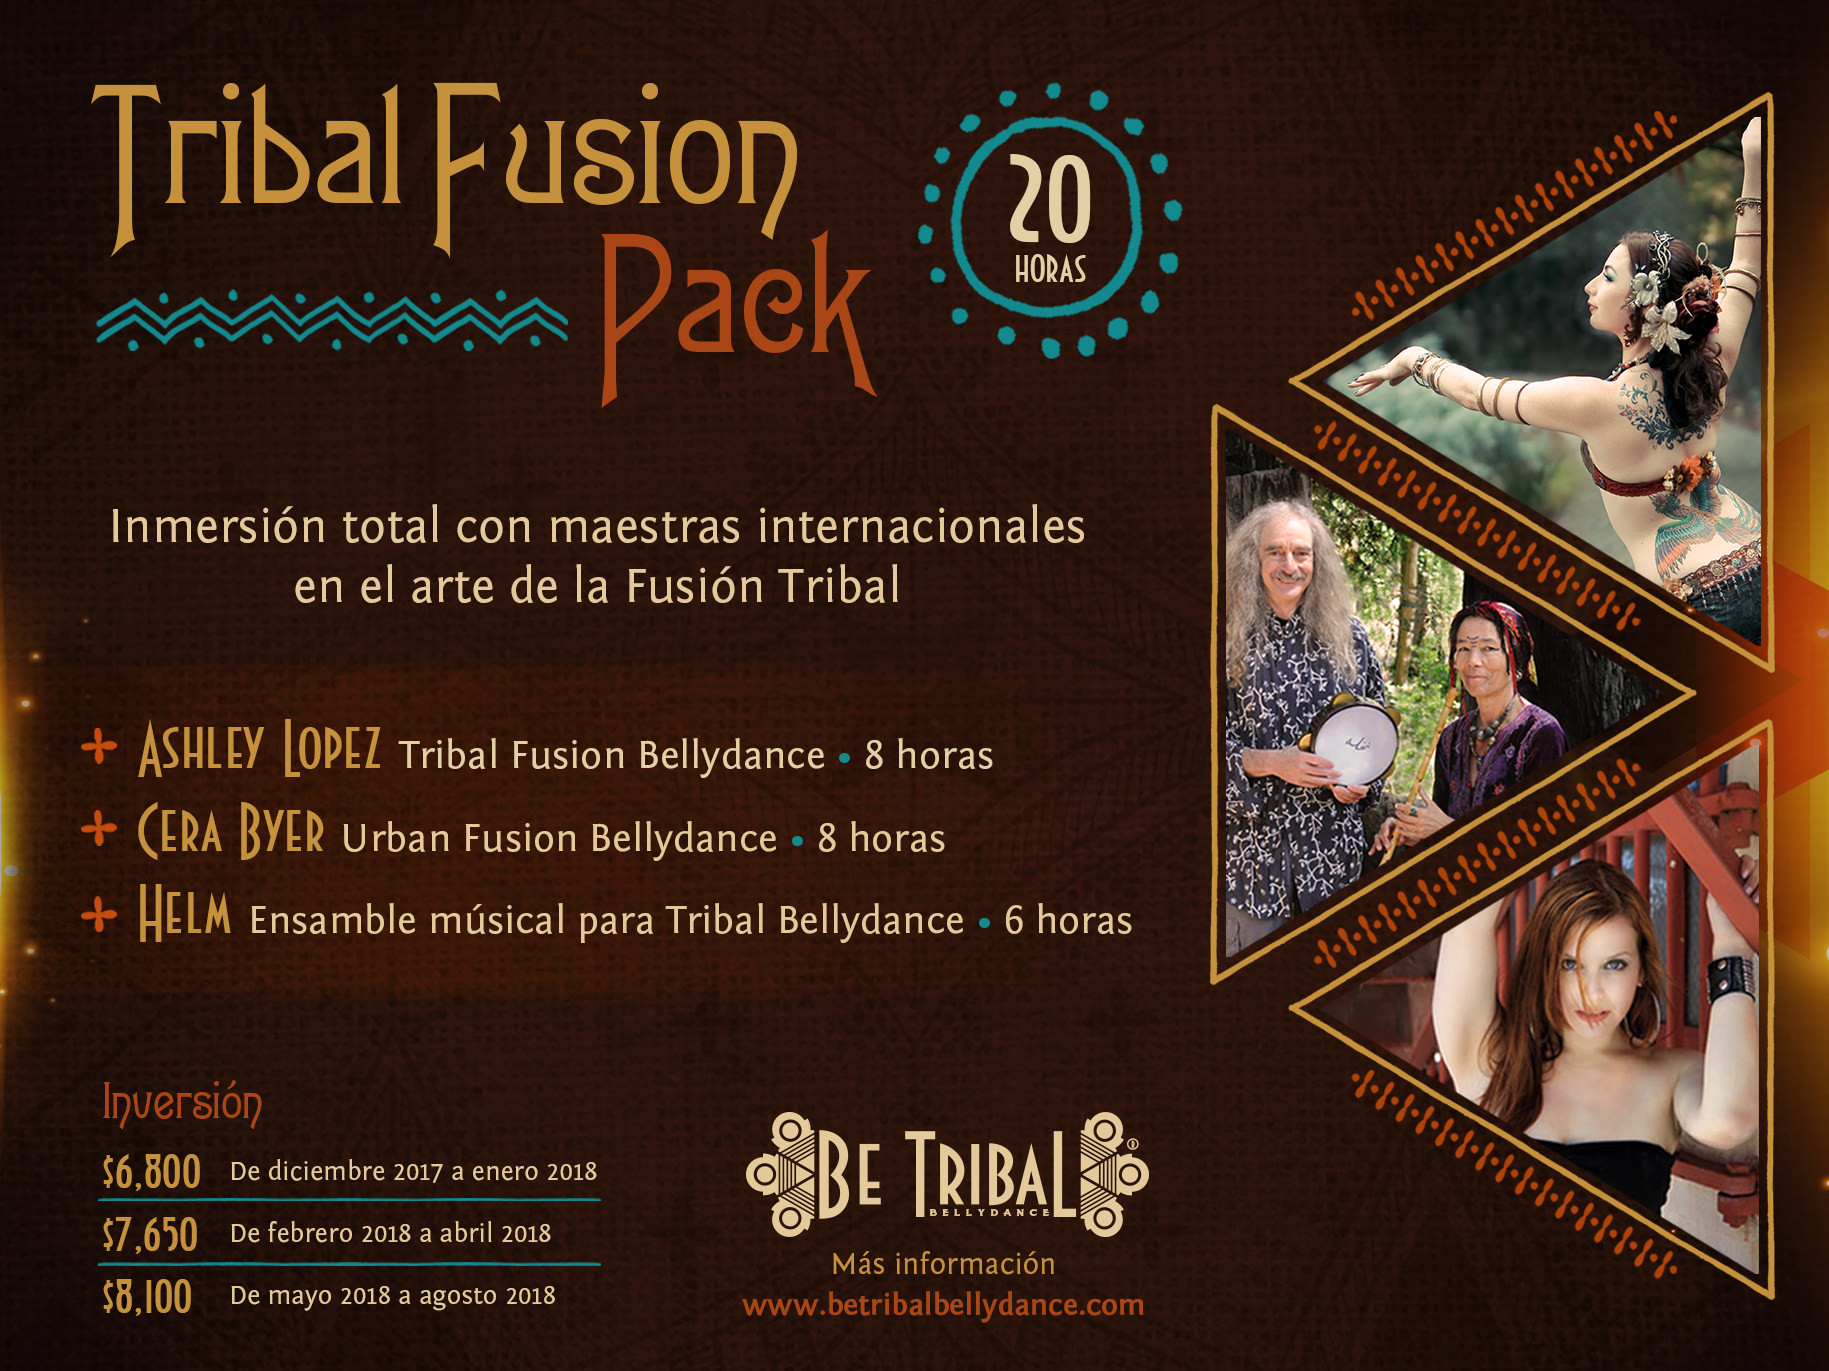 Paquete B Tribal Fusion Pack